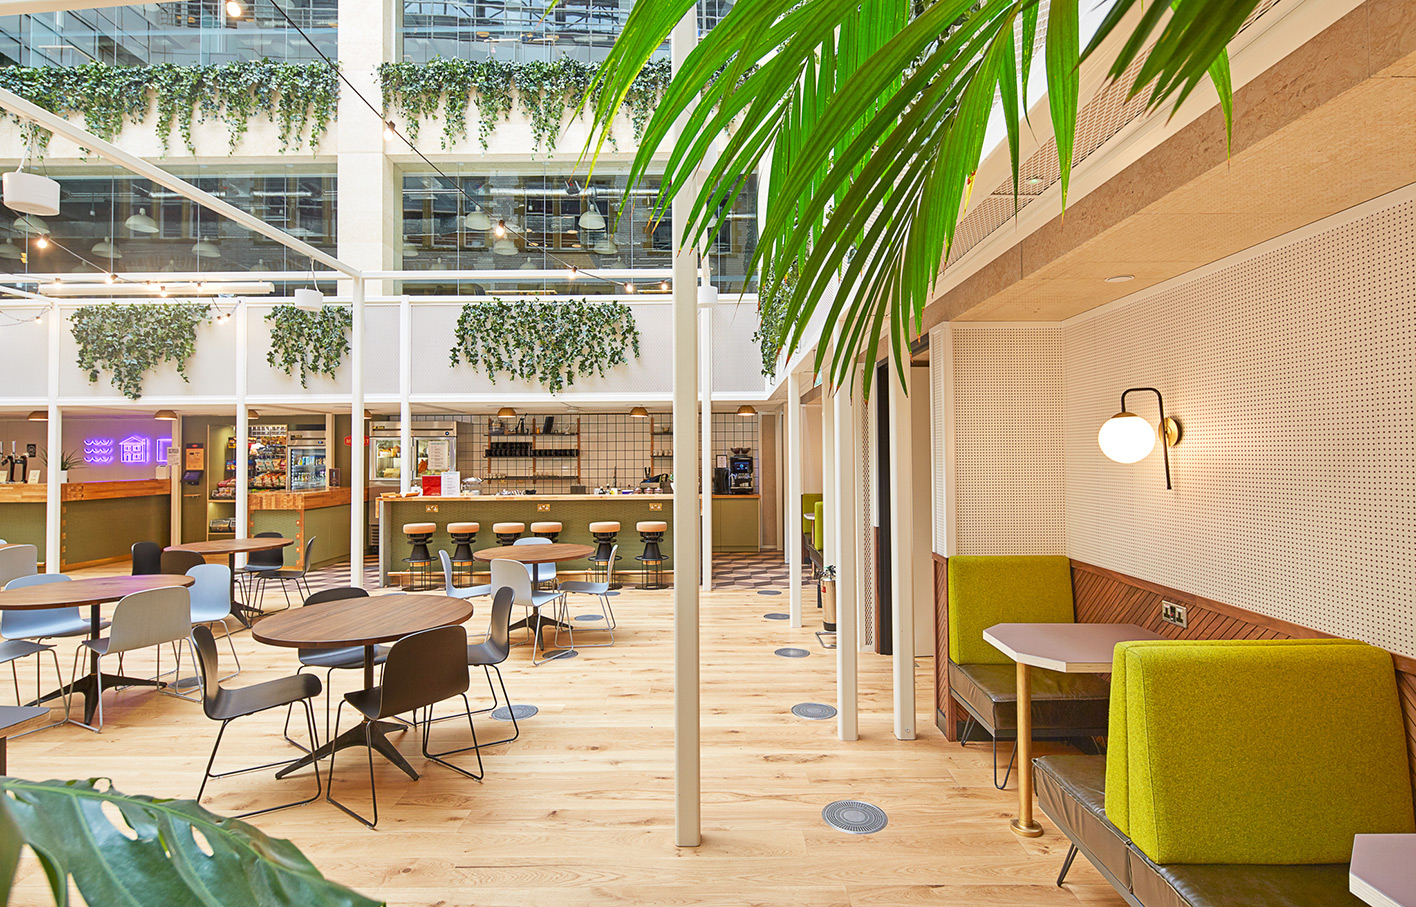 Aldworth James & Bond | WeWork Waterhouse Square - seat nooks in atrium